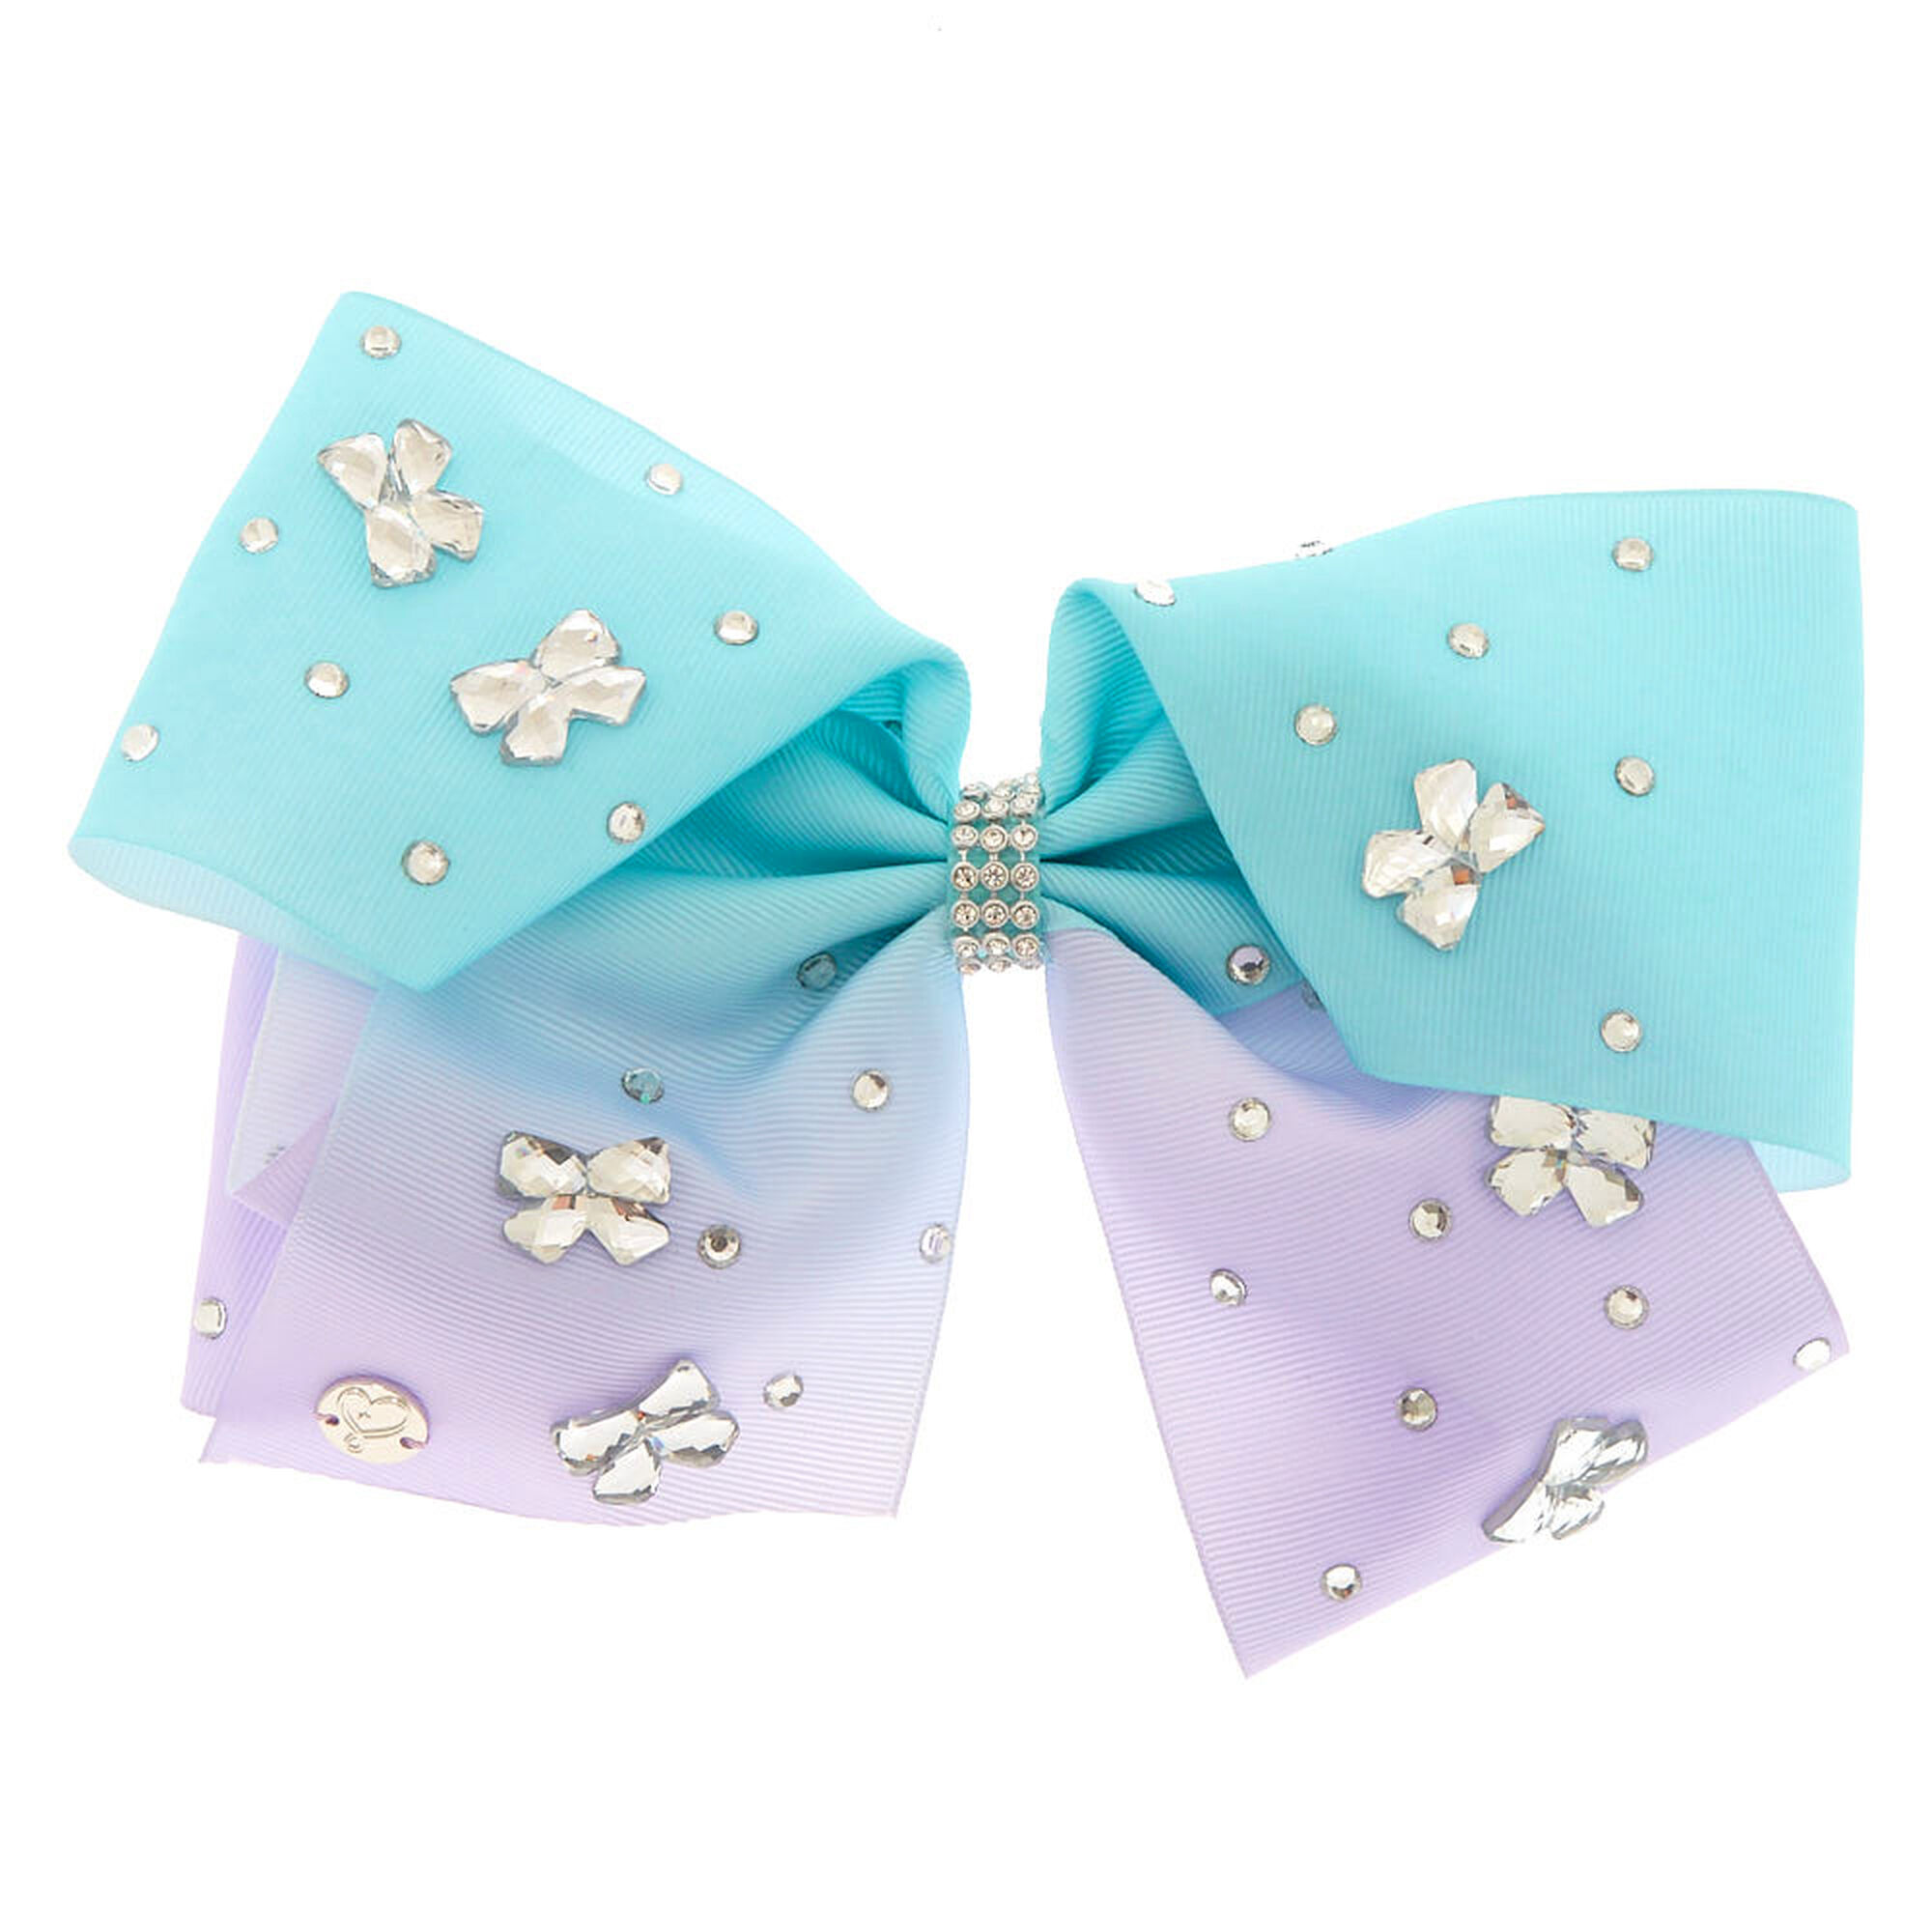 JoJo Siwa Bows 7 days Jojo Bow 8 cm with Unicorn and Rainbow pattern - Beautiful Hair Accessories - Best Xmas Present Stocking Filler for Girls.